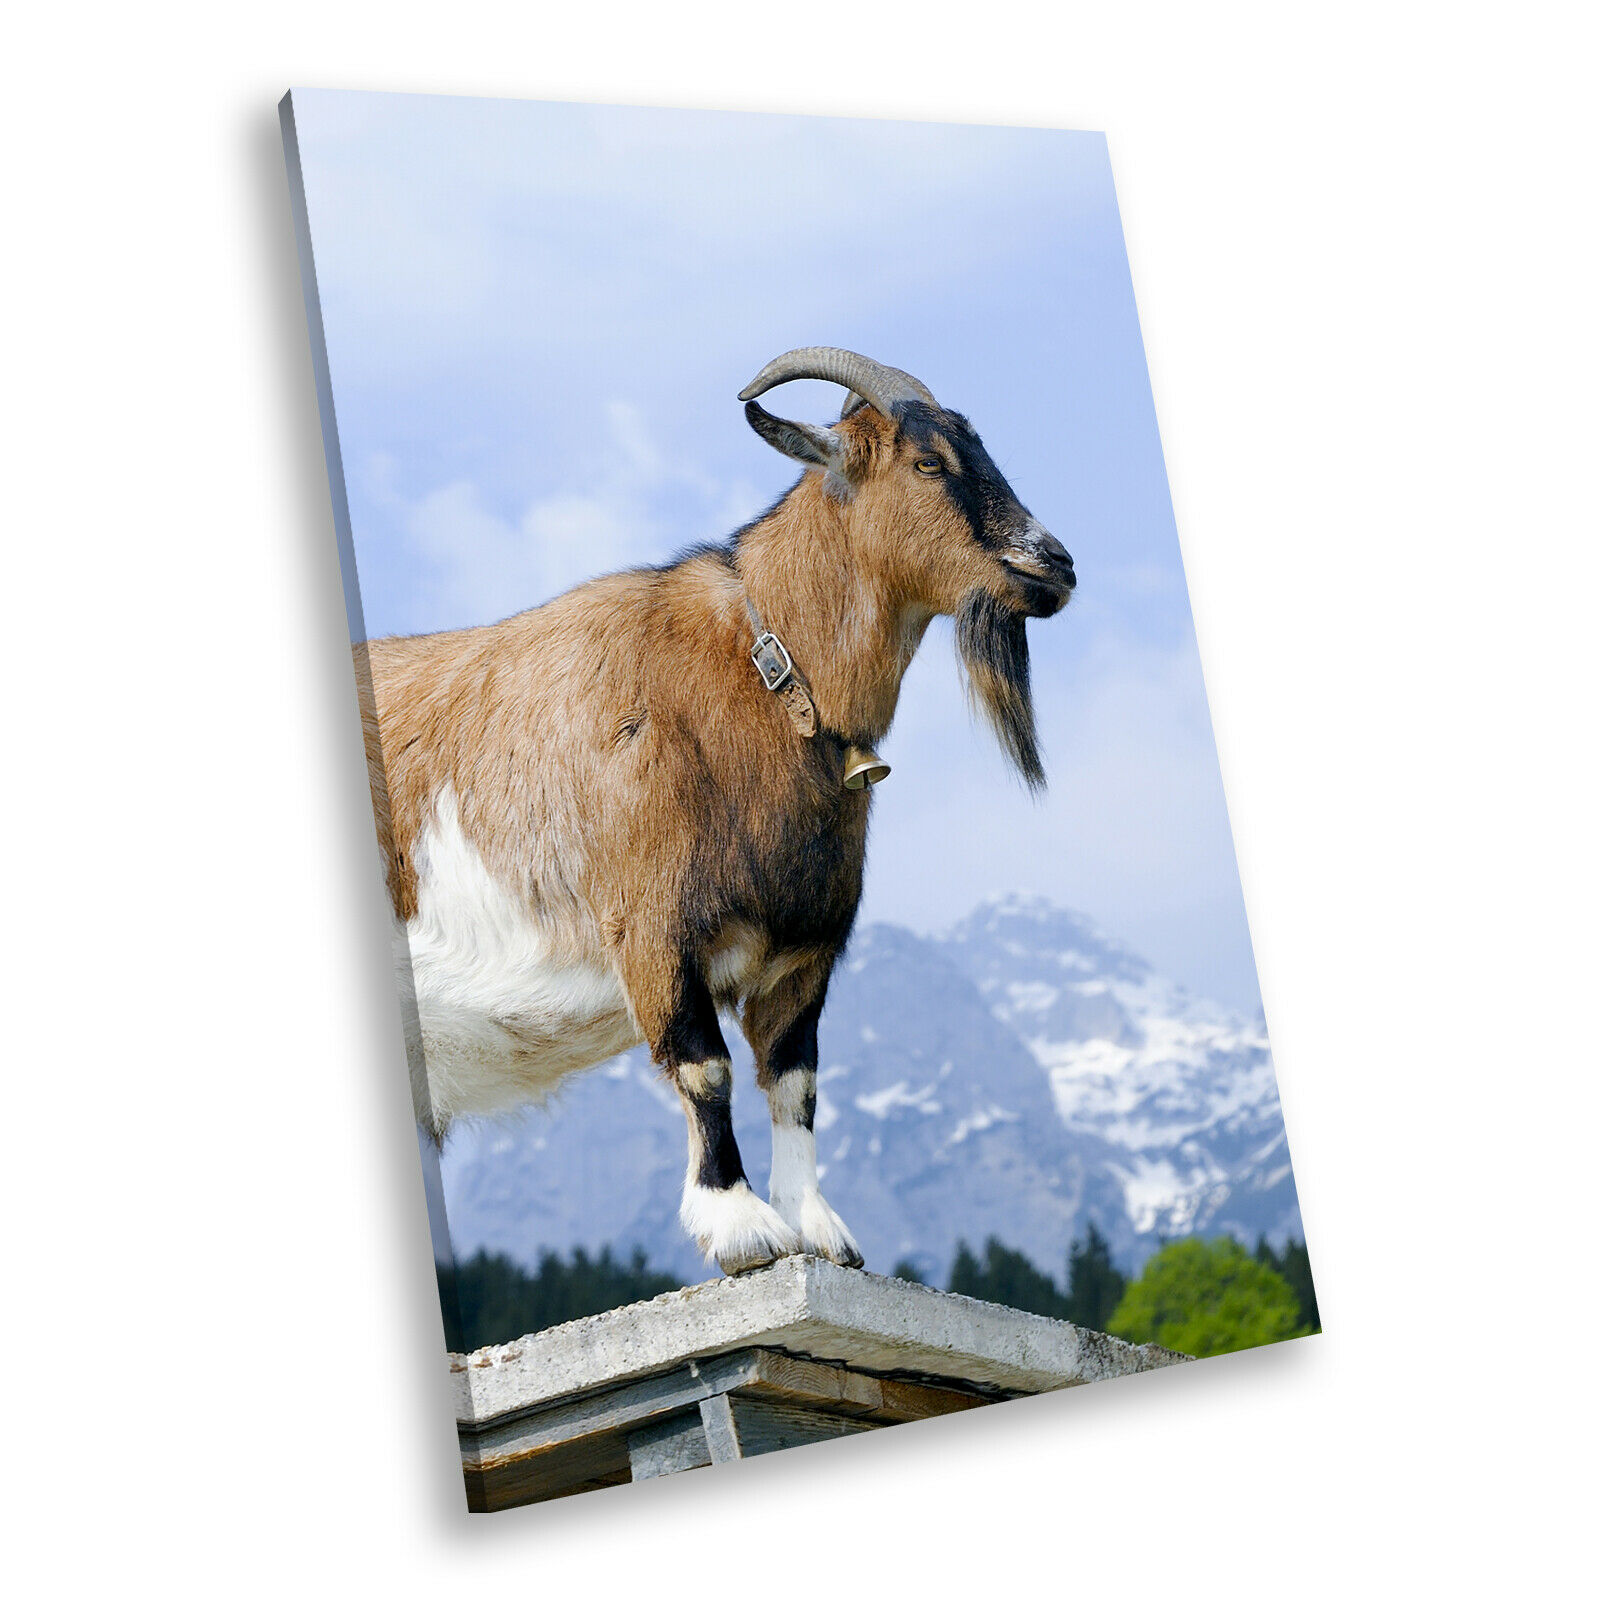 braun Grün Goat Landscape Portrait Animal Canvas Wall Art Picture Prints